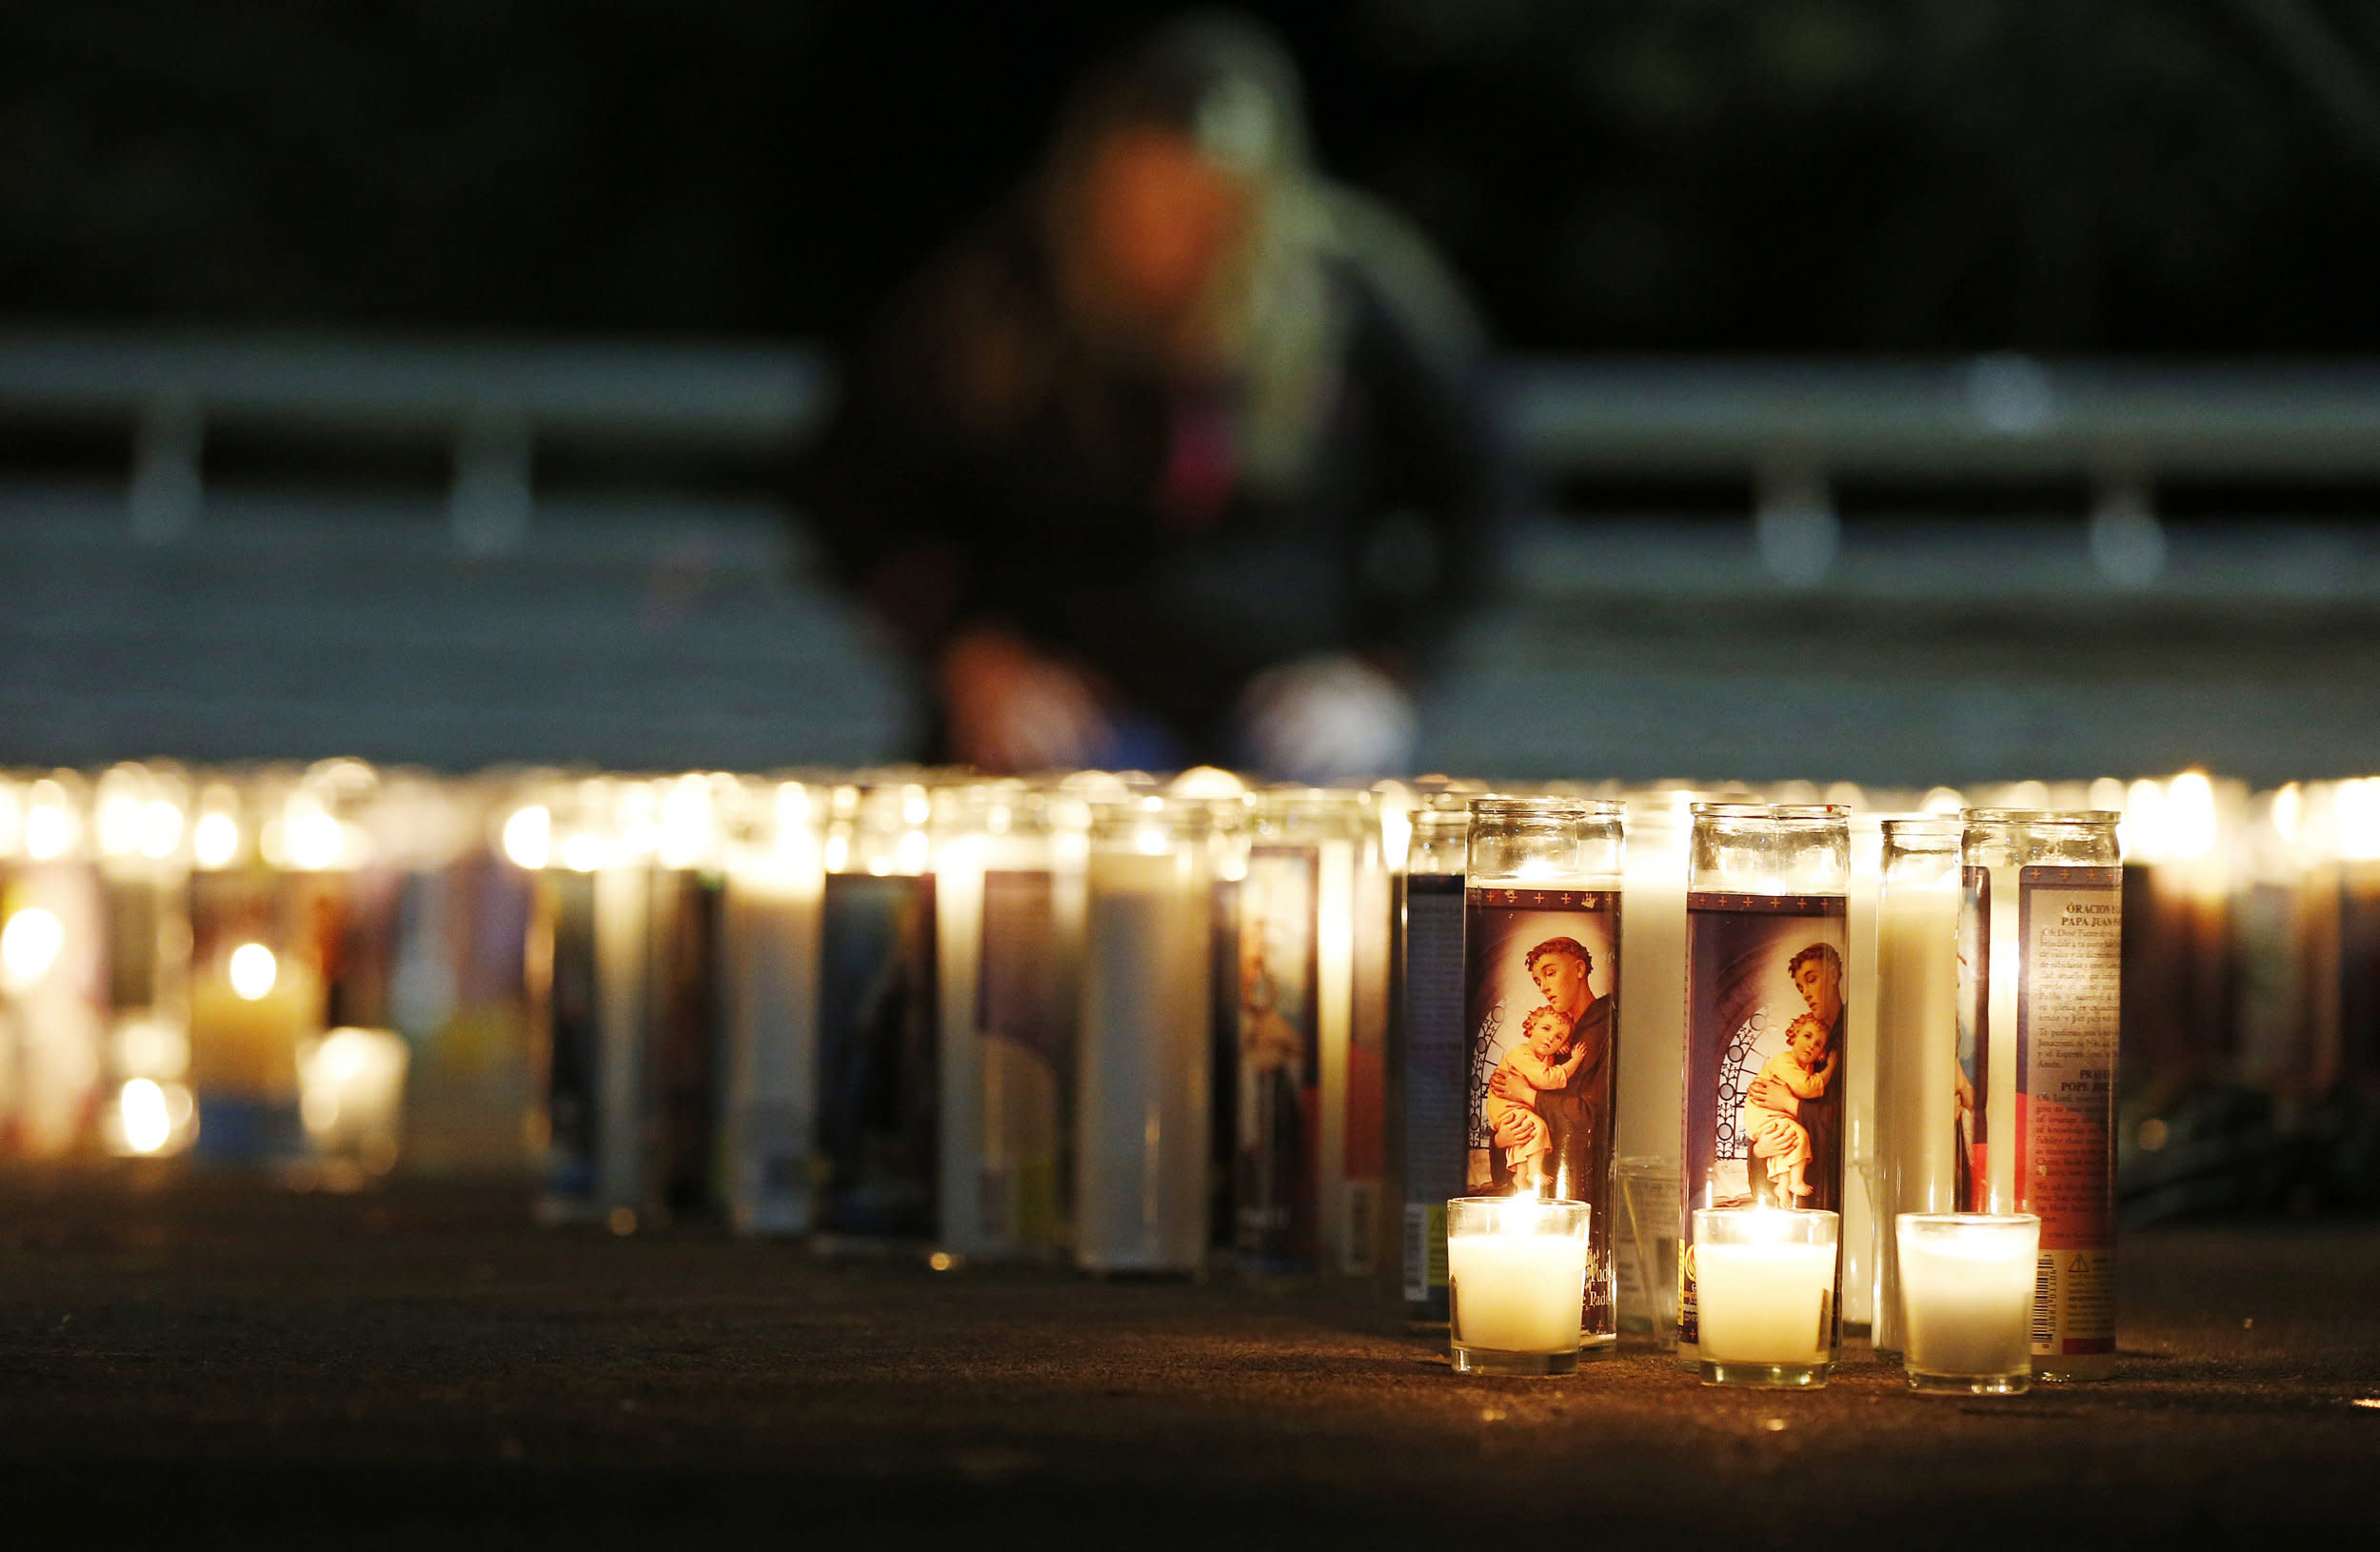 Oregon shooting 'threat' may have circulated on social media